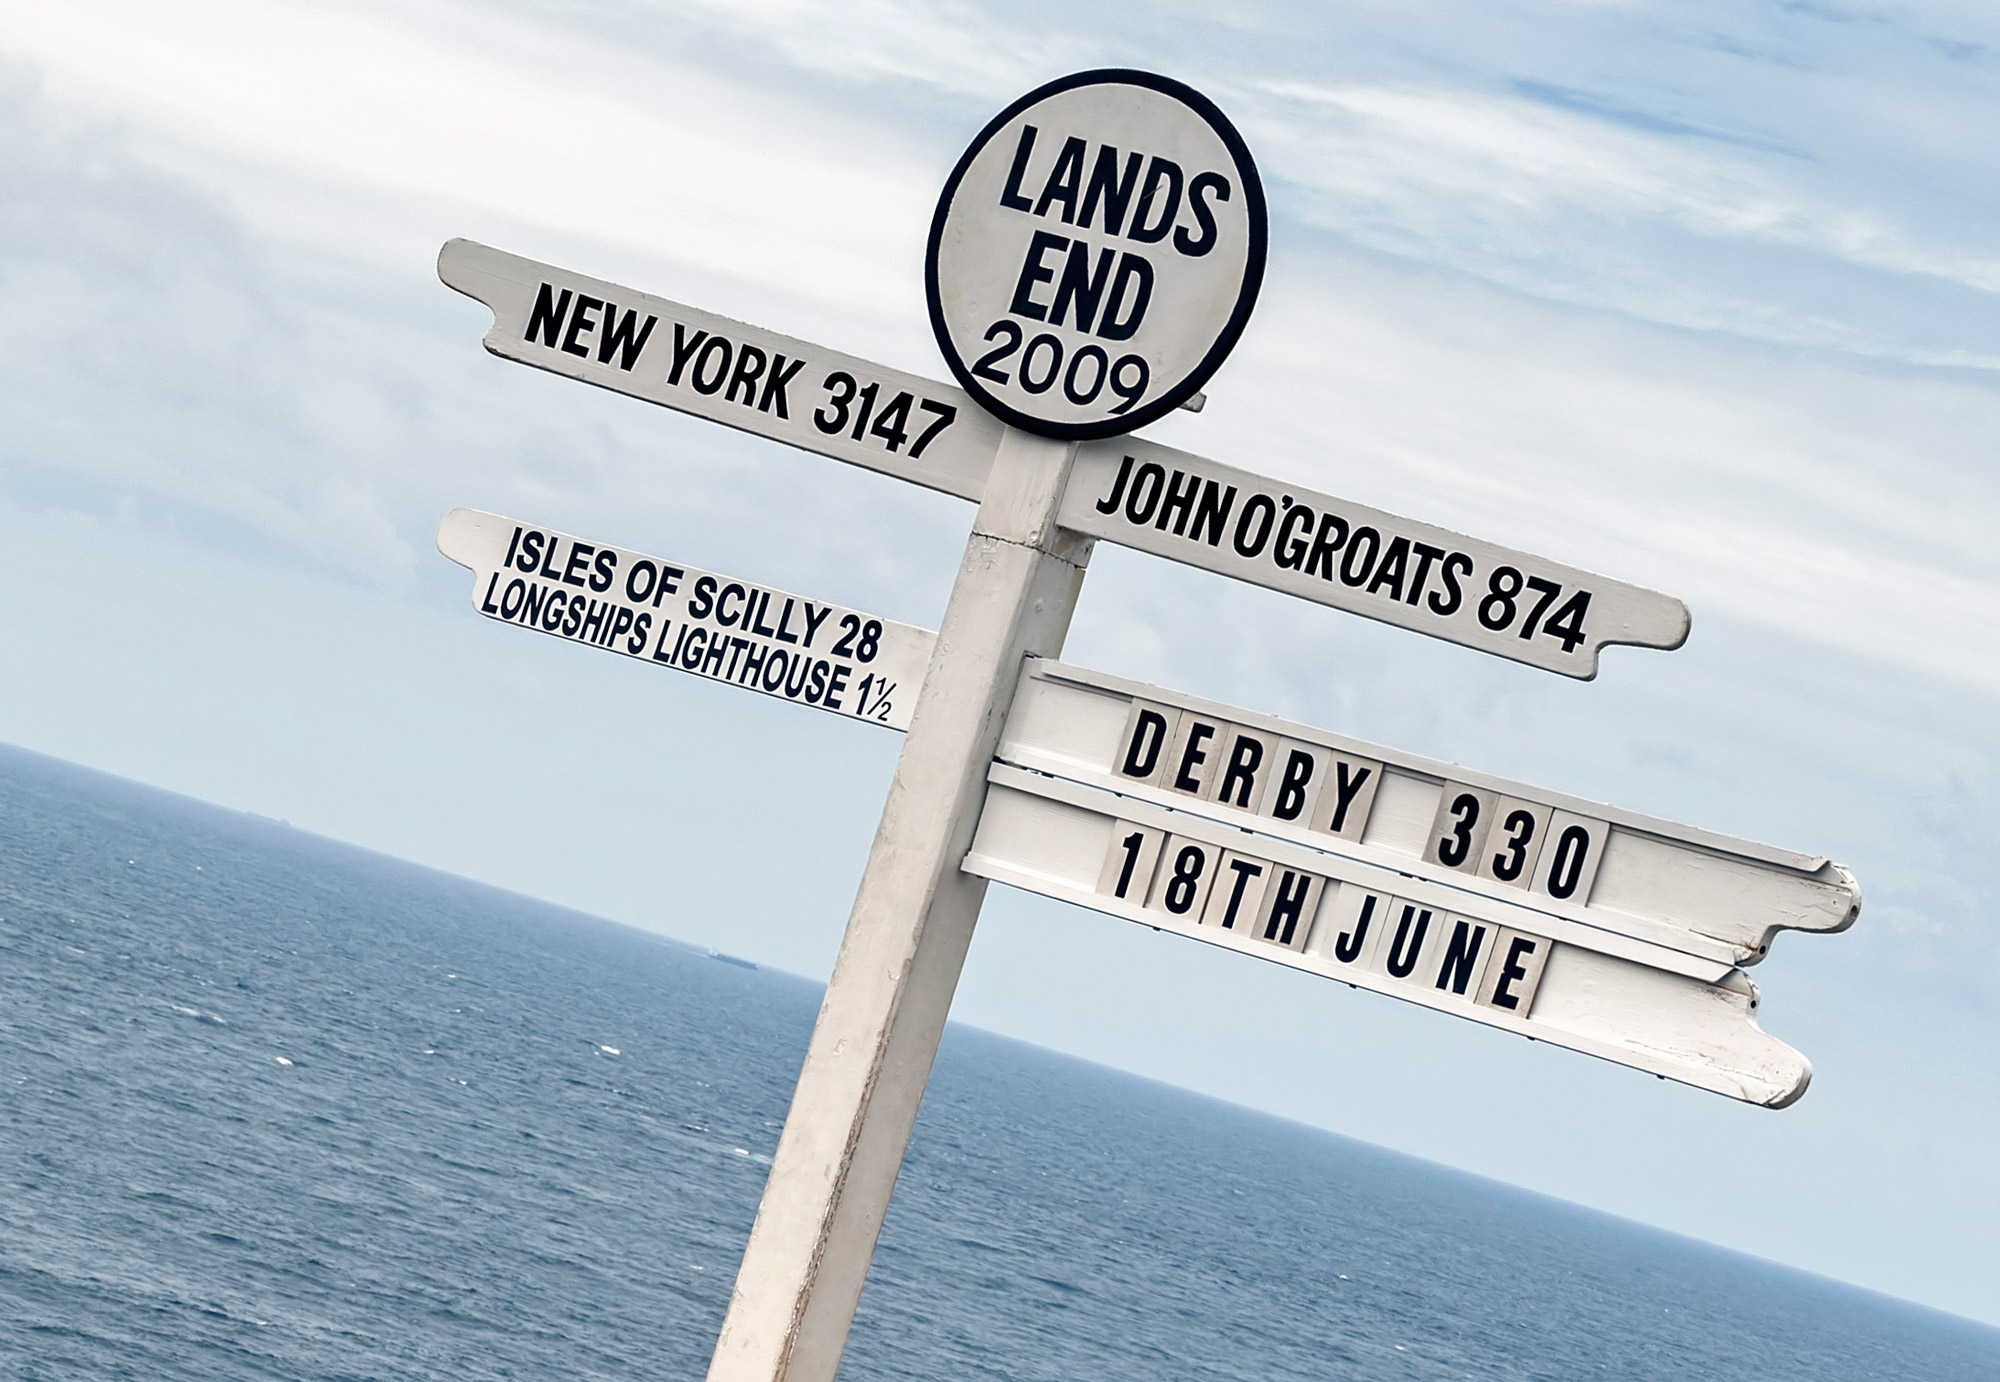 Lands End signpost showing how far to John O'Groats and New York